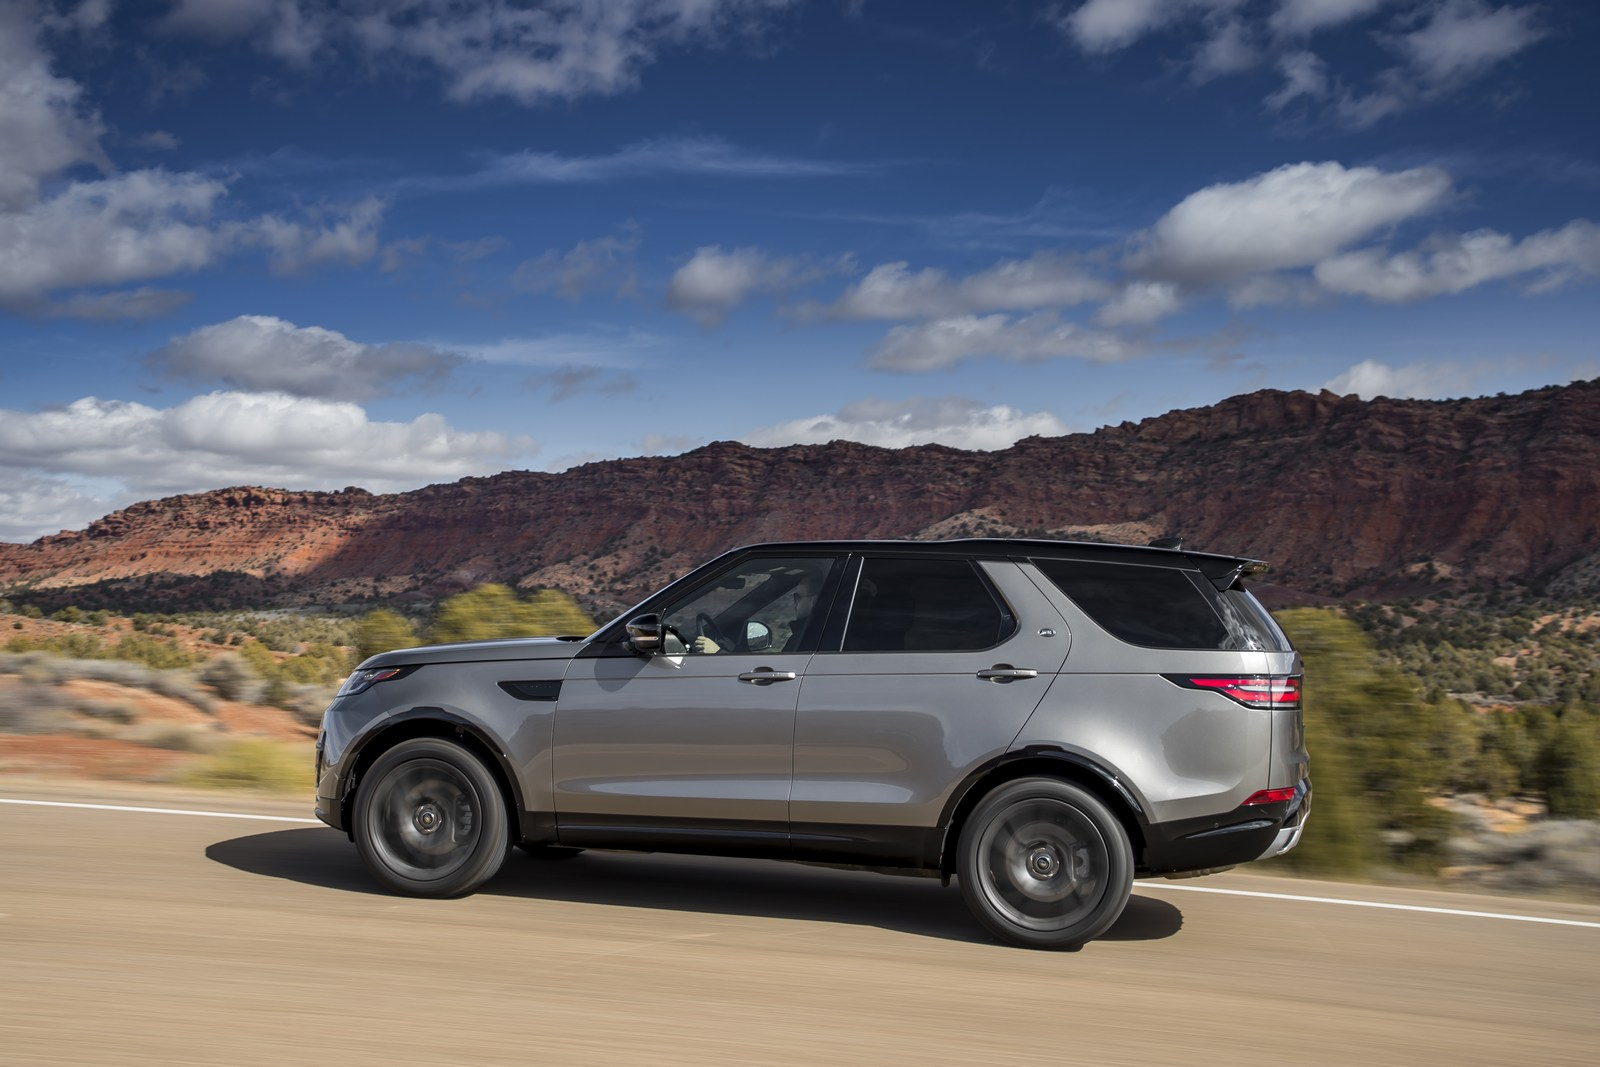 land rover eyeing more car like vehicles possible new discovery model. Black Bedroom Furniture Sets. Home Design Ideas